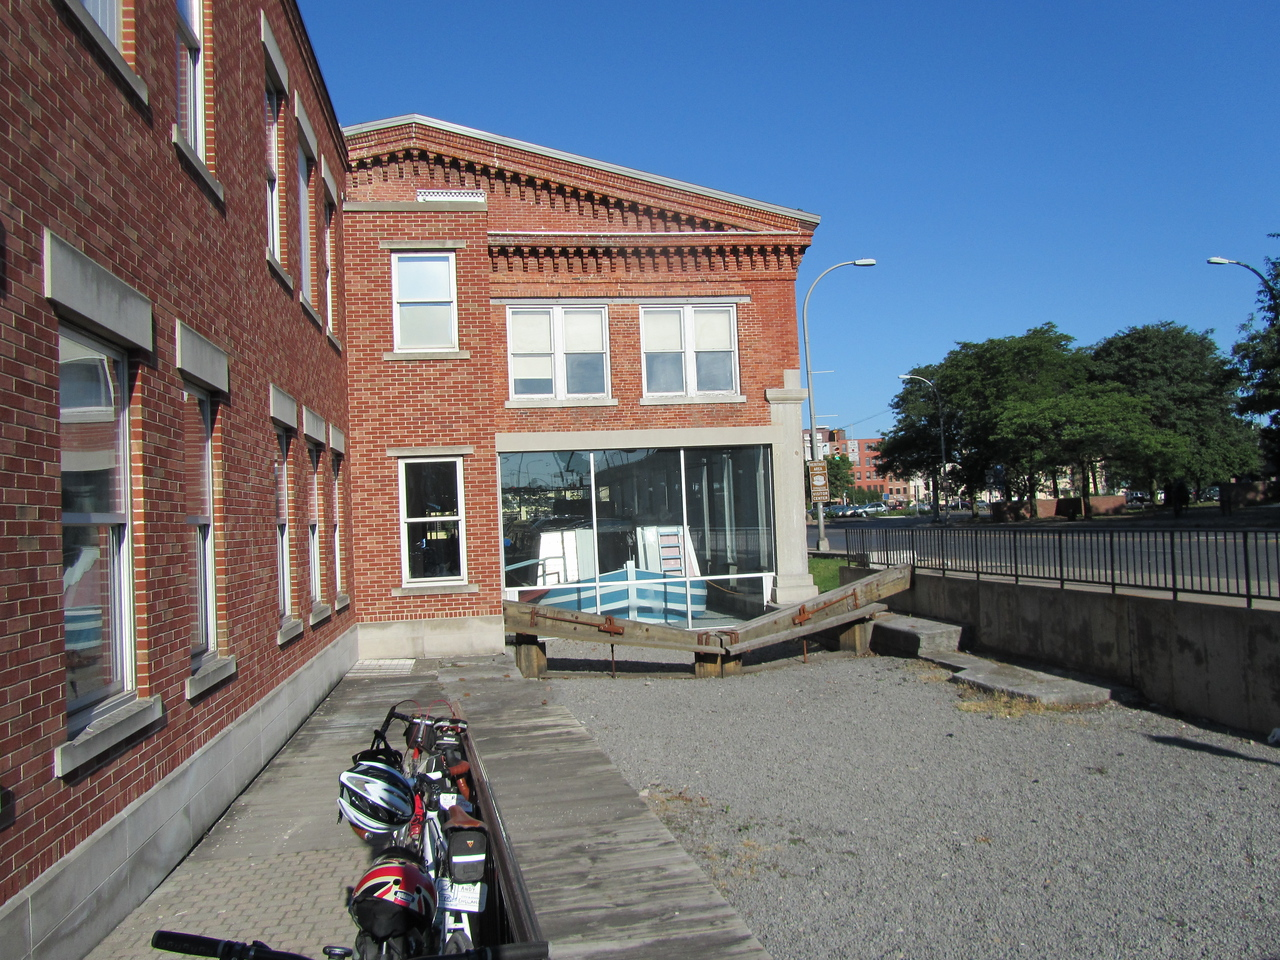 Original weighlock bldg. The large glass windows were added after the fact and the boats would drift right in and weighed through water displacement.